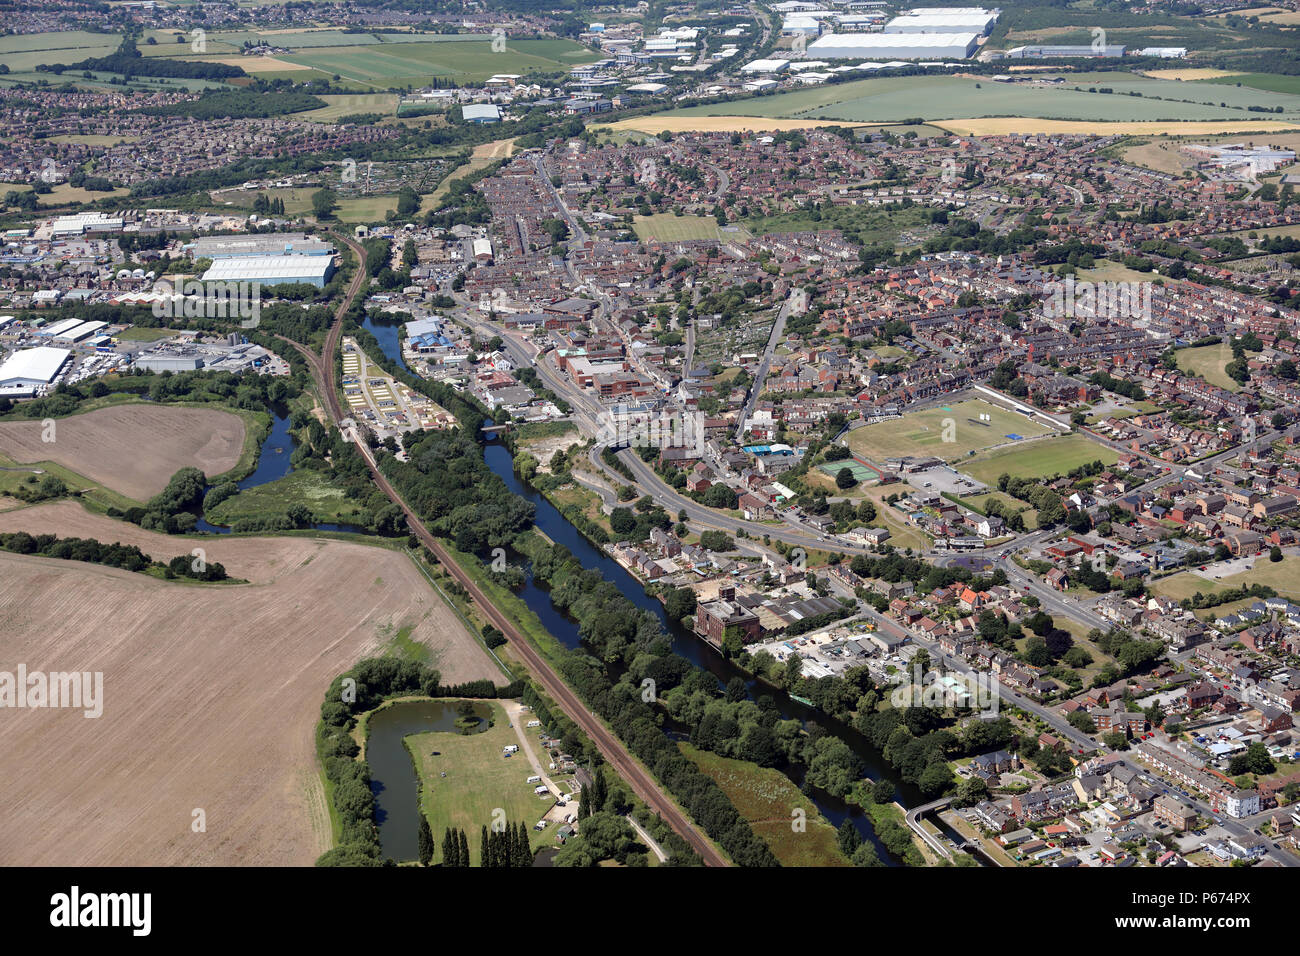 aerial view of Mexborough in the Metropolitan Borough of Doncaster - Stock Image